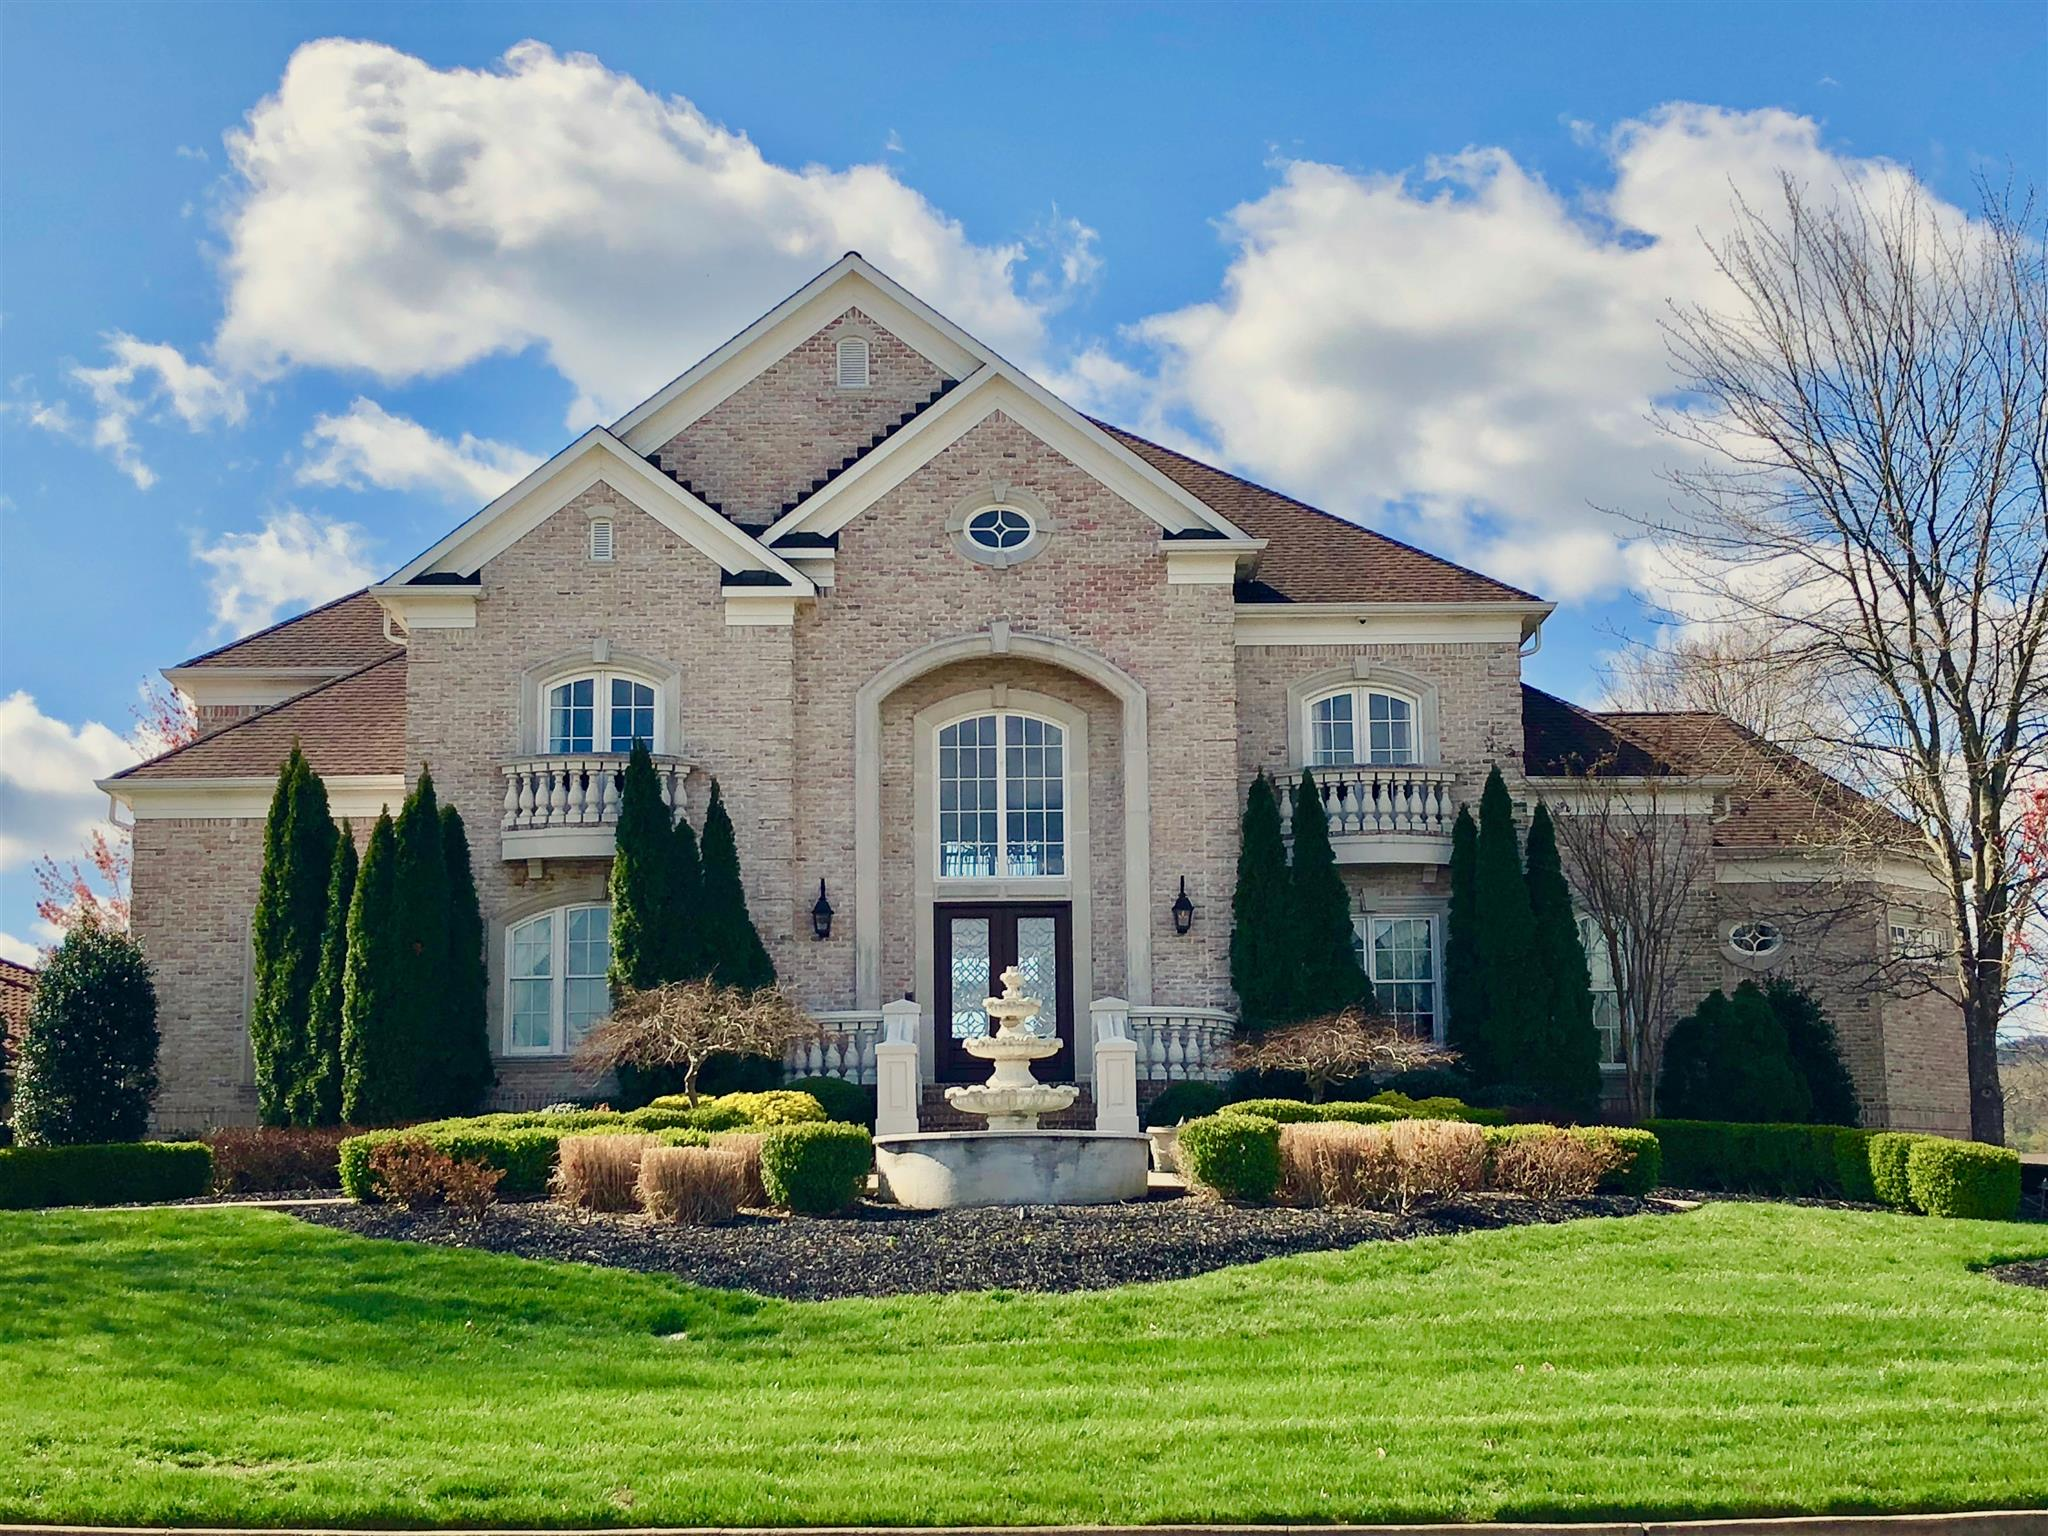 43 GOVERNORS WAY, Brentwood, Tennessee